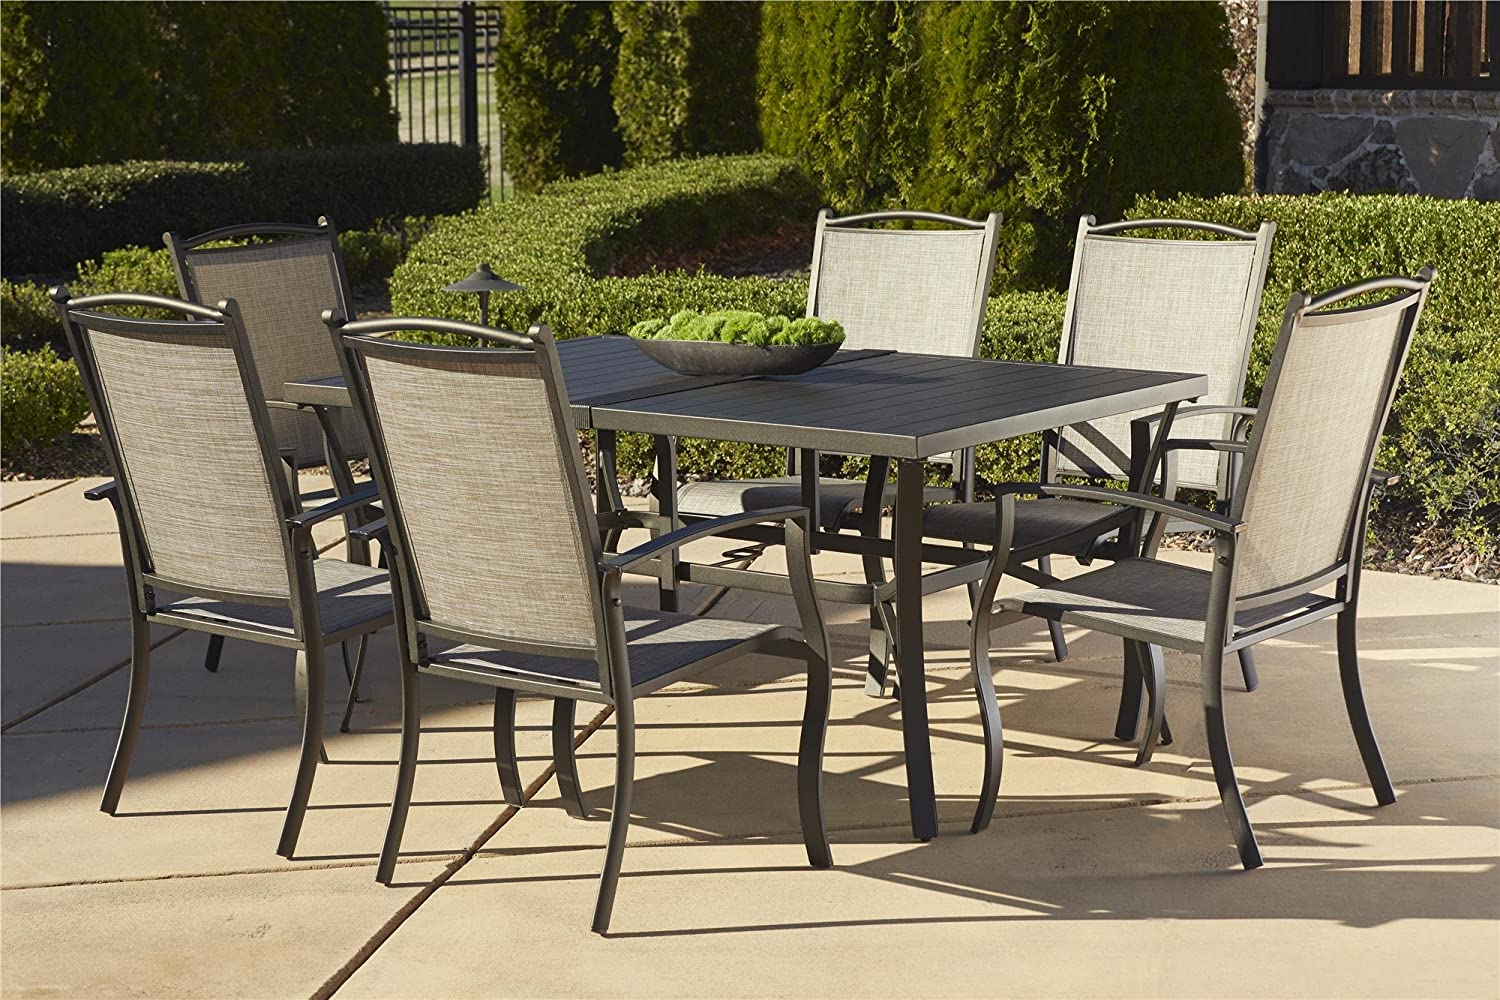 cascade set frame dining sling living piece oakland pd black shop metal patio